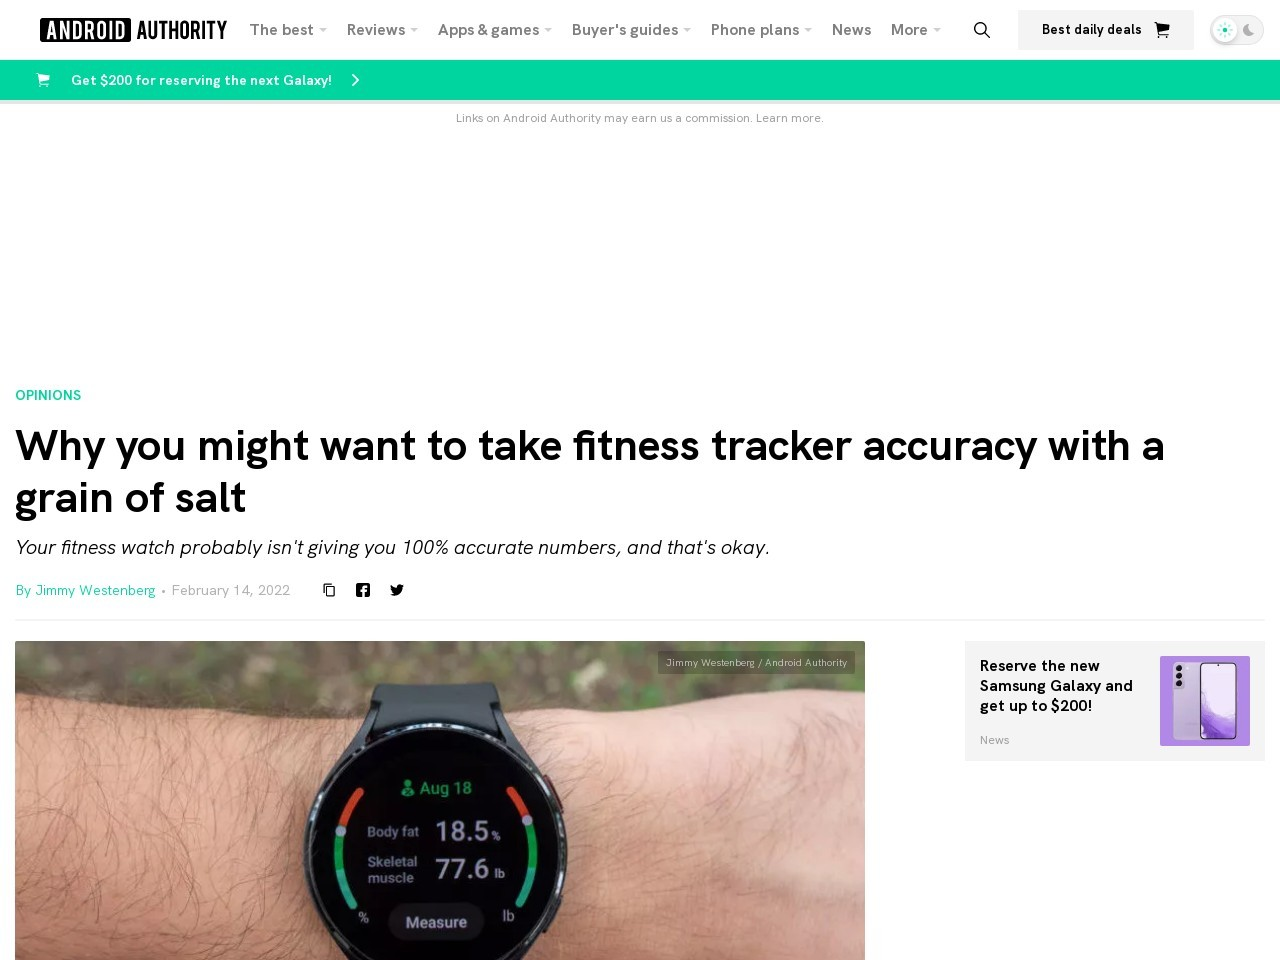 Why you might want to take fitness tracker accuracy with a grain of salt